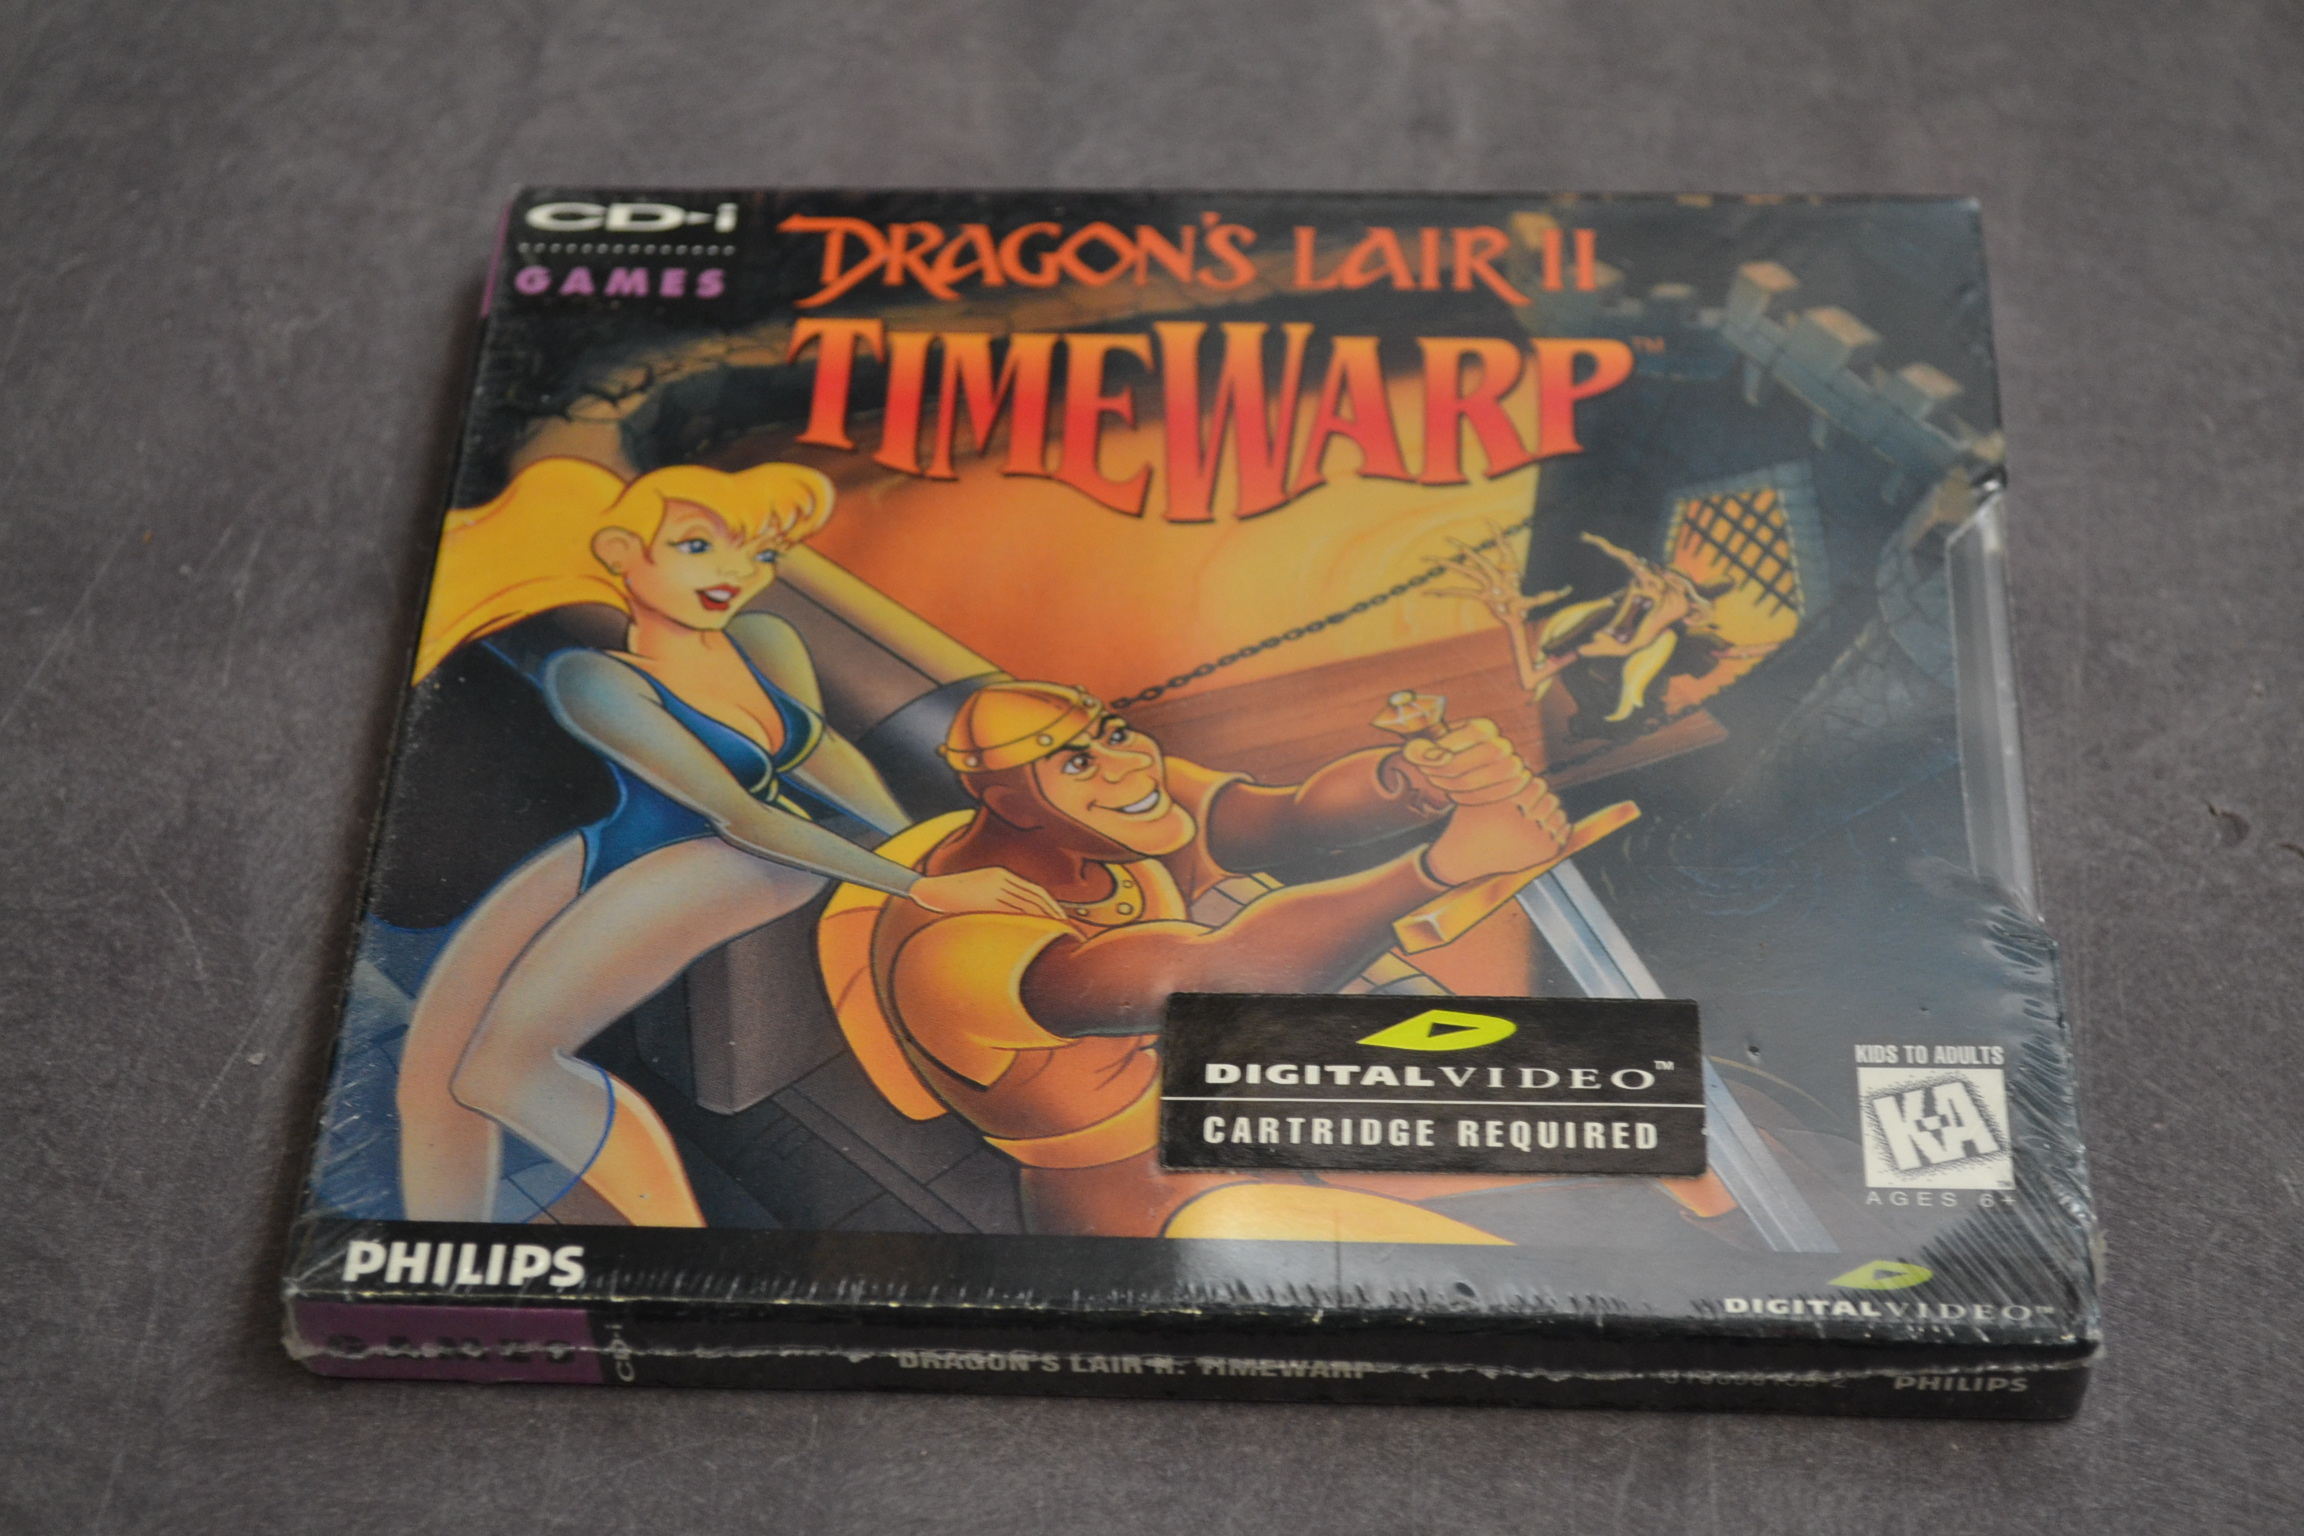 Dragon's Lair II Timewarp For CDi